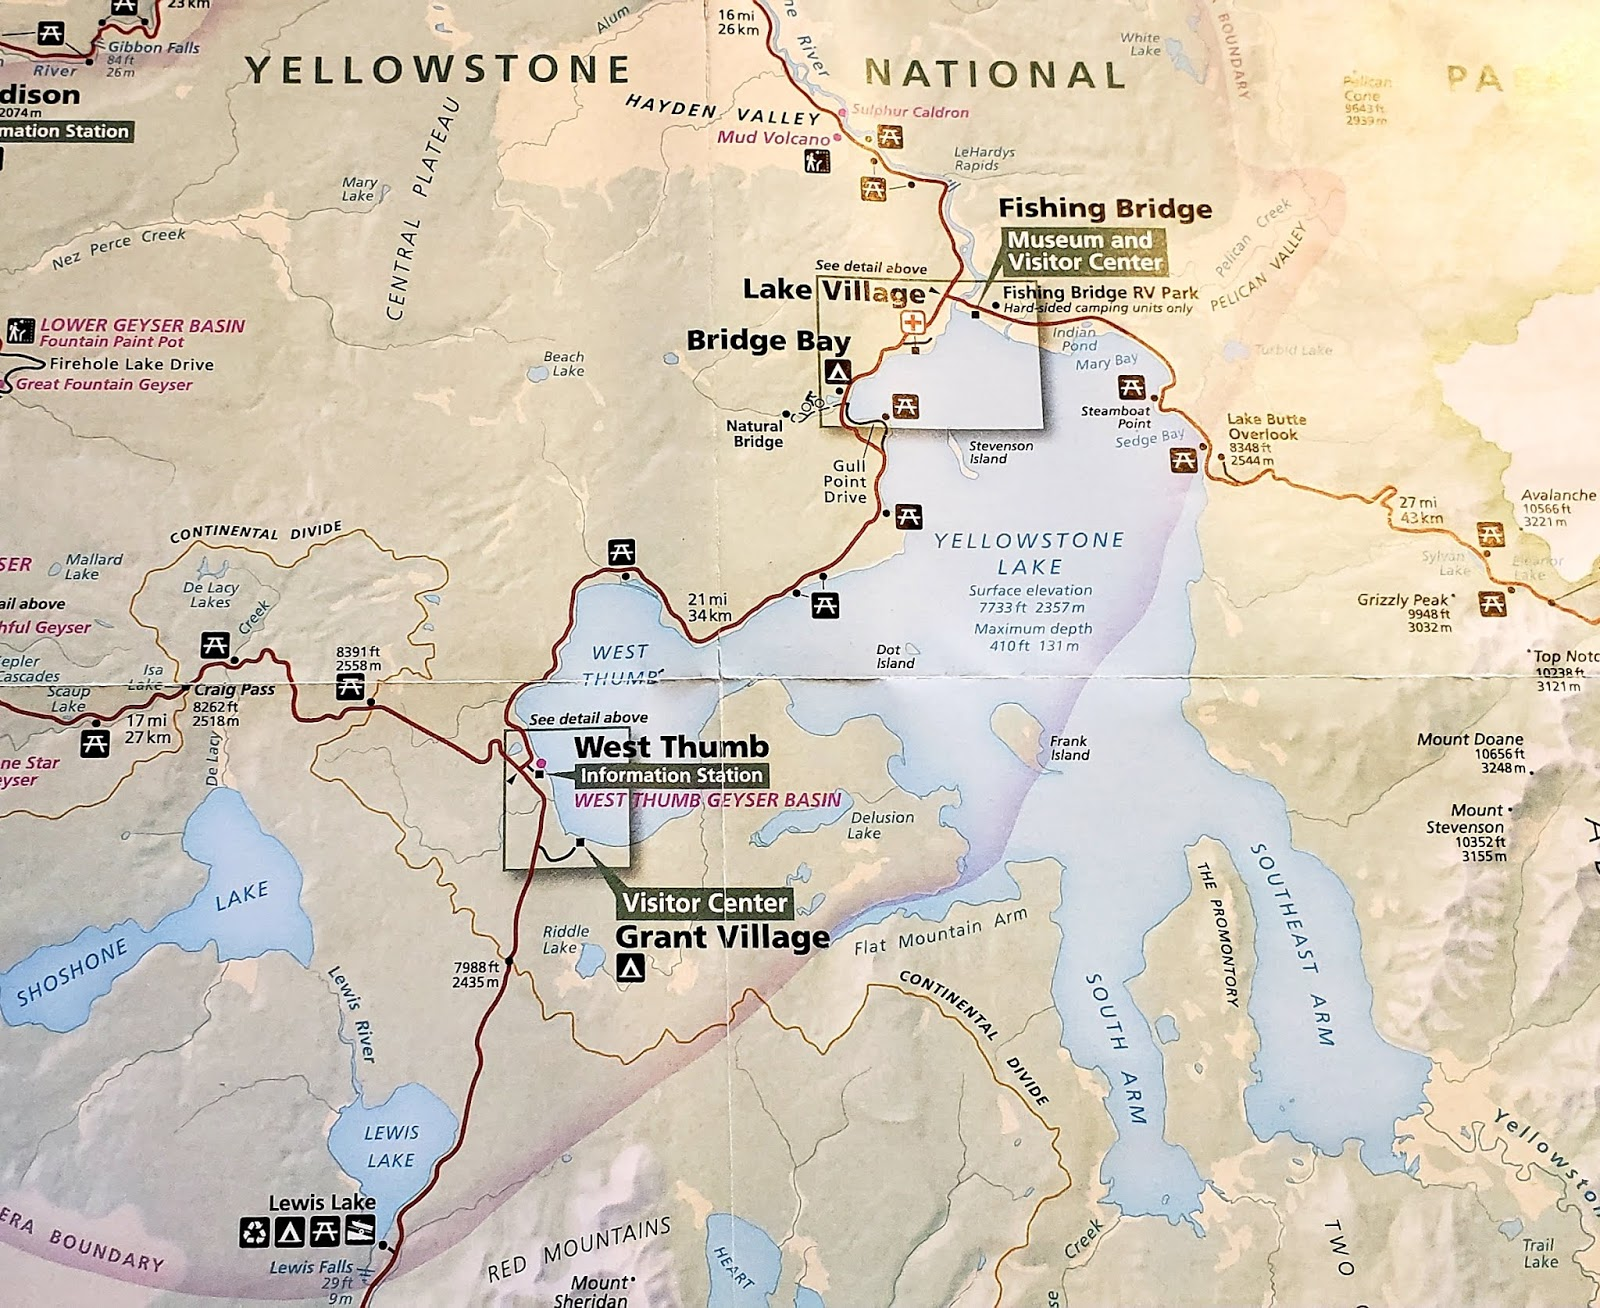 Eas-On Down The Road: YNP: West Thumb Geyser Basin ... on map of grand prismatic spring, map of yellowstone geysers, map of mud volcano, map of firehole canyon drive, map of mystic falls, map of yellowstone national park, map of old faithful area, map of yellowstone river,